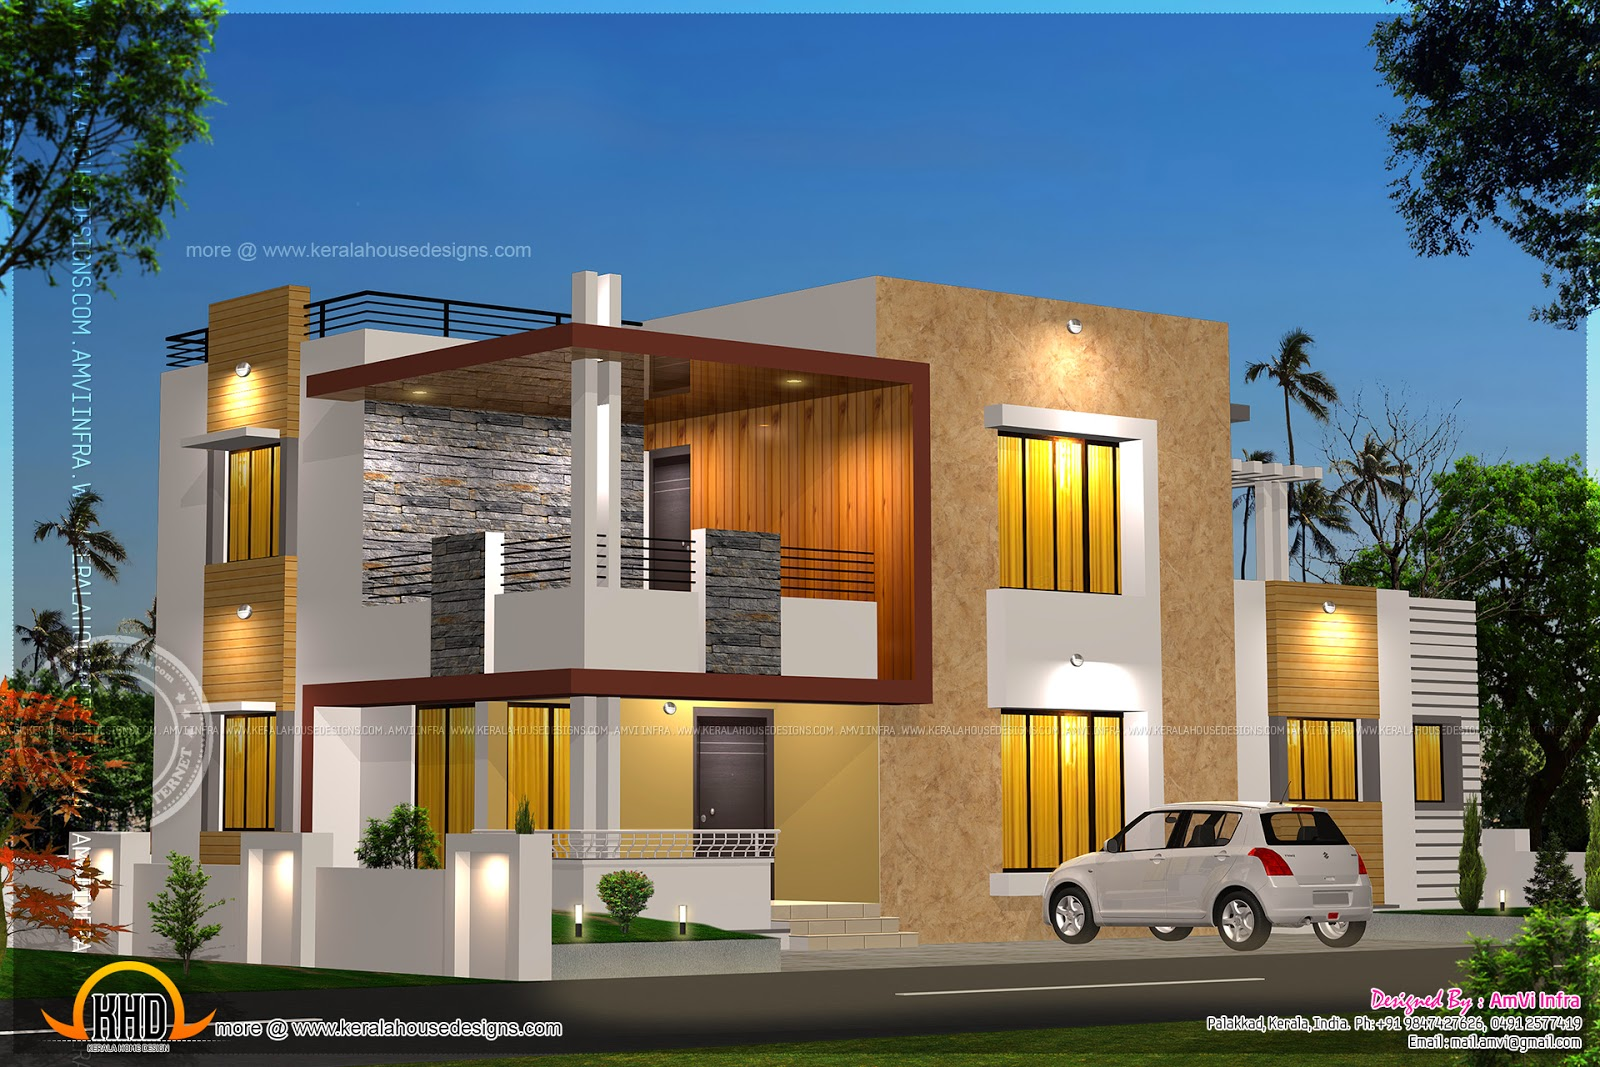 Ground Floor Residence Elevation : Floor plan and elevation of modern house kerala home